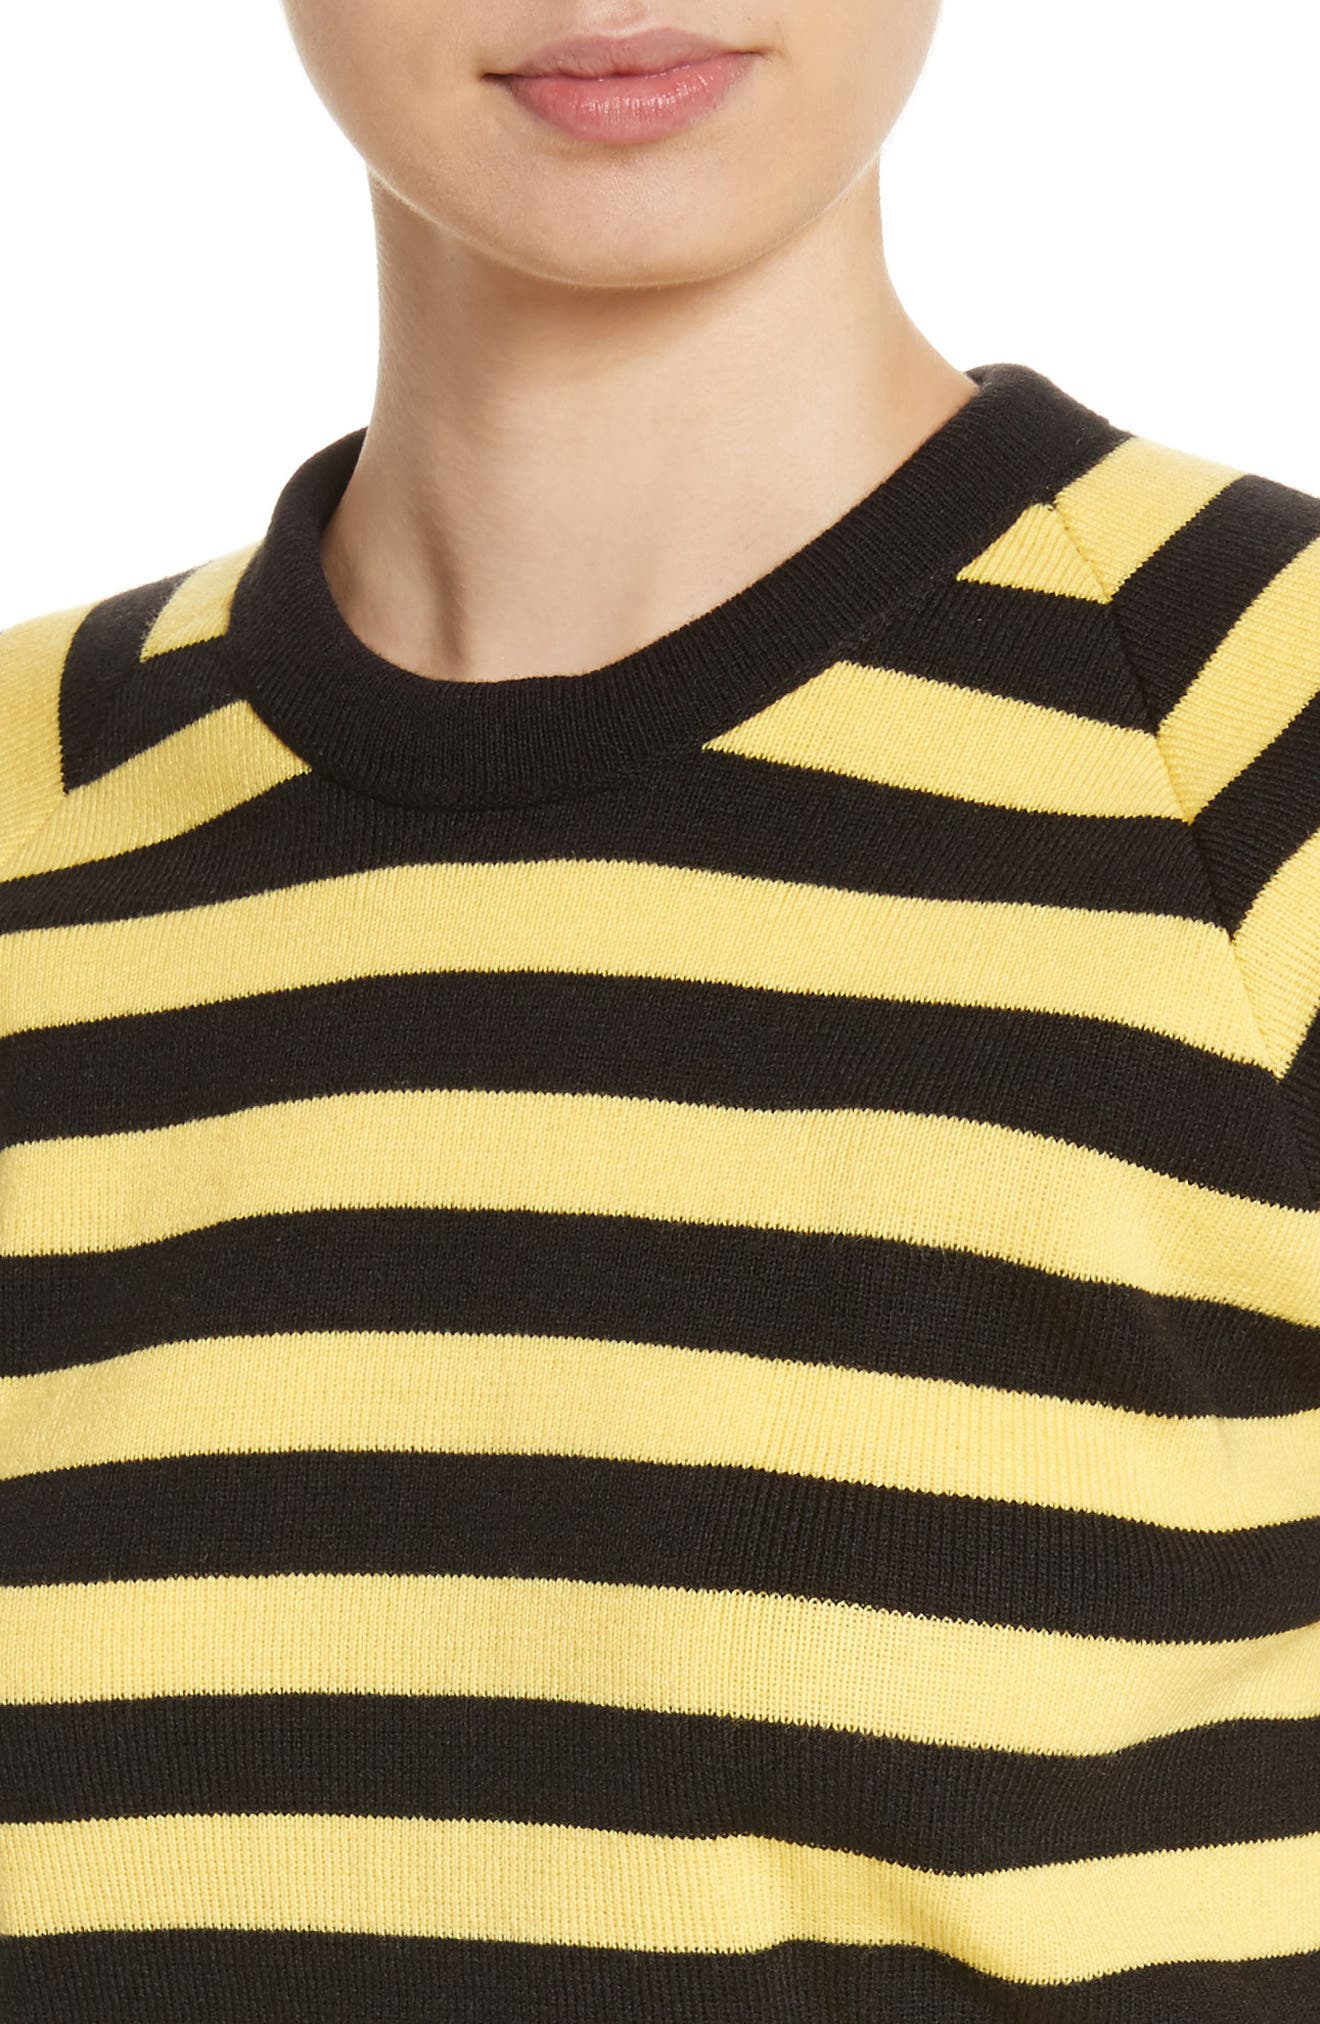 Bumblebee Stripe Sweater,                             Alternate thumbnail 4, color,                             750